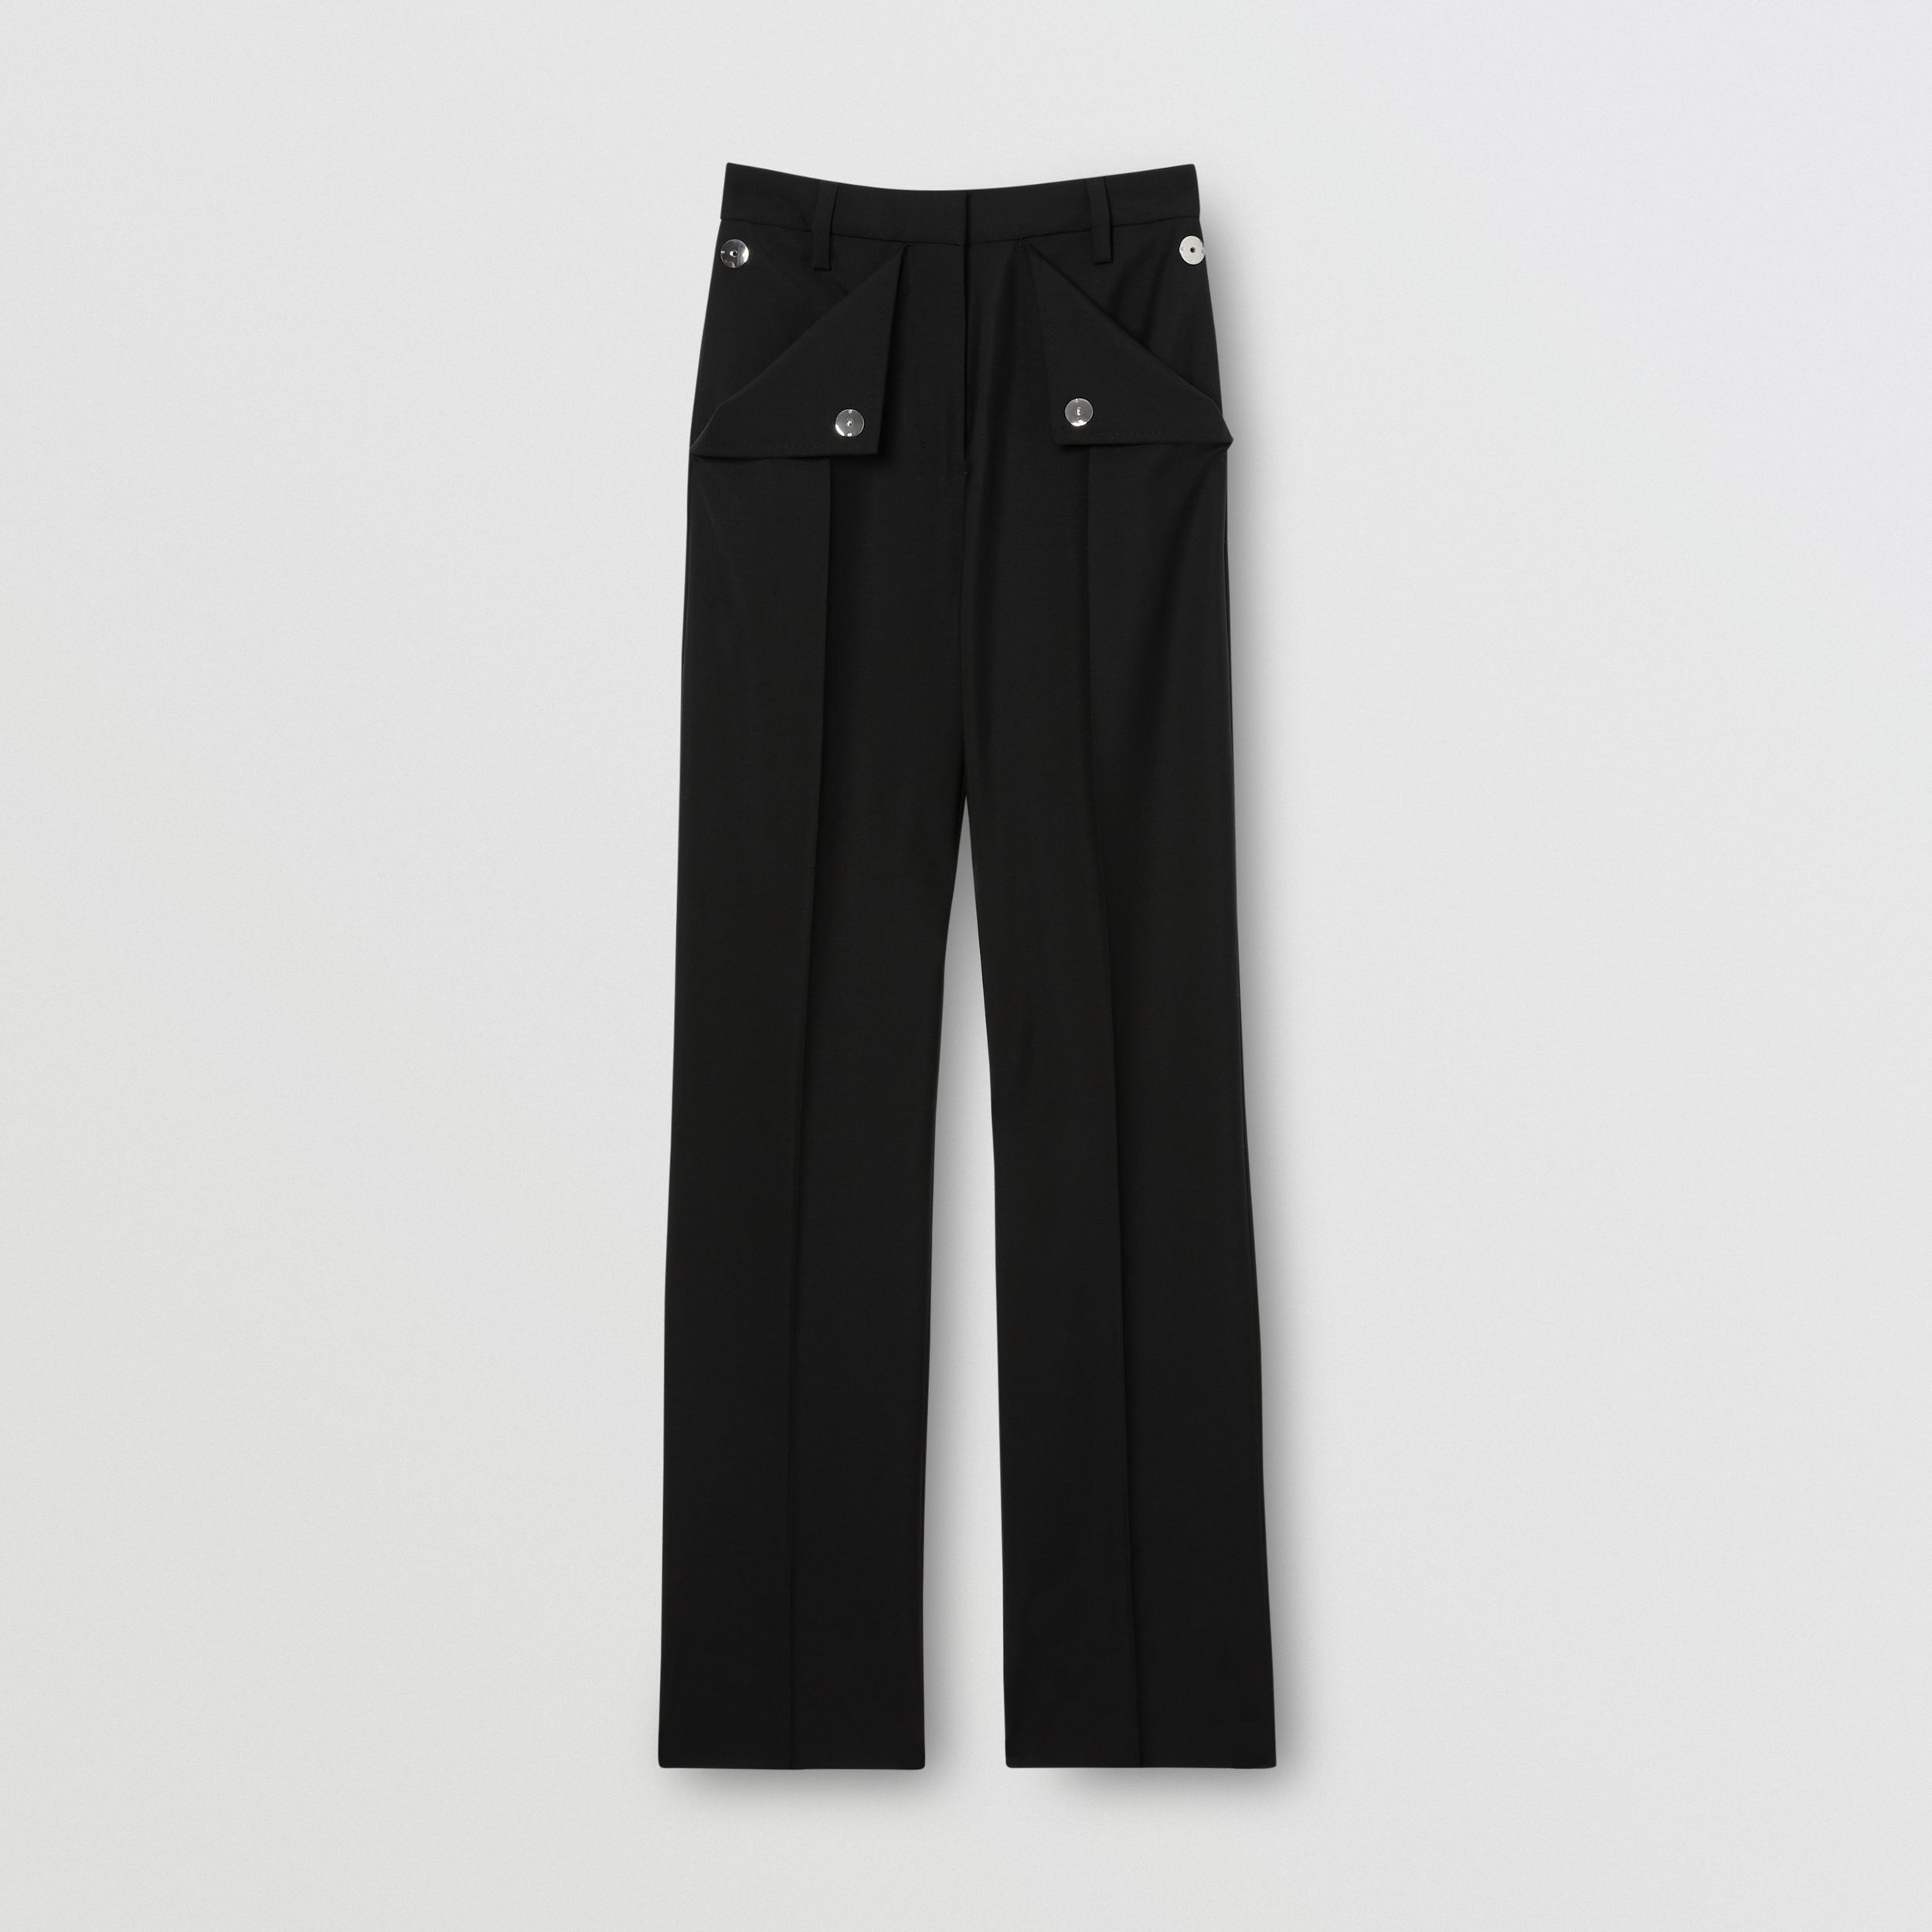 Pocket Detail Wool Mohair Tailored Trousers in Black - Women | Burberry - 4